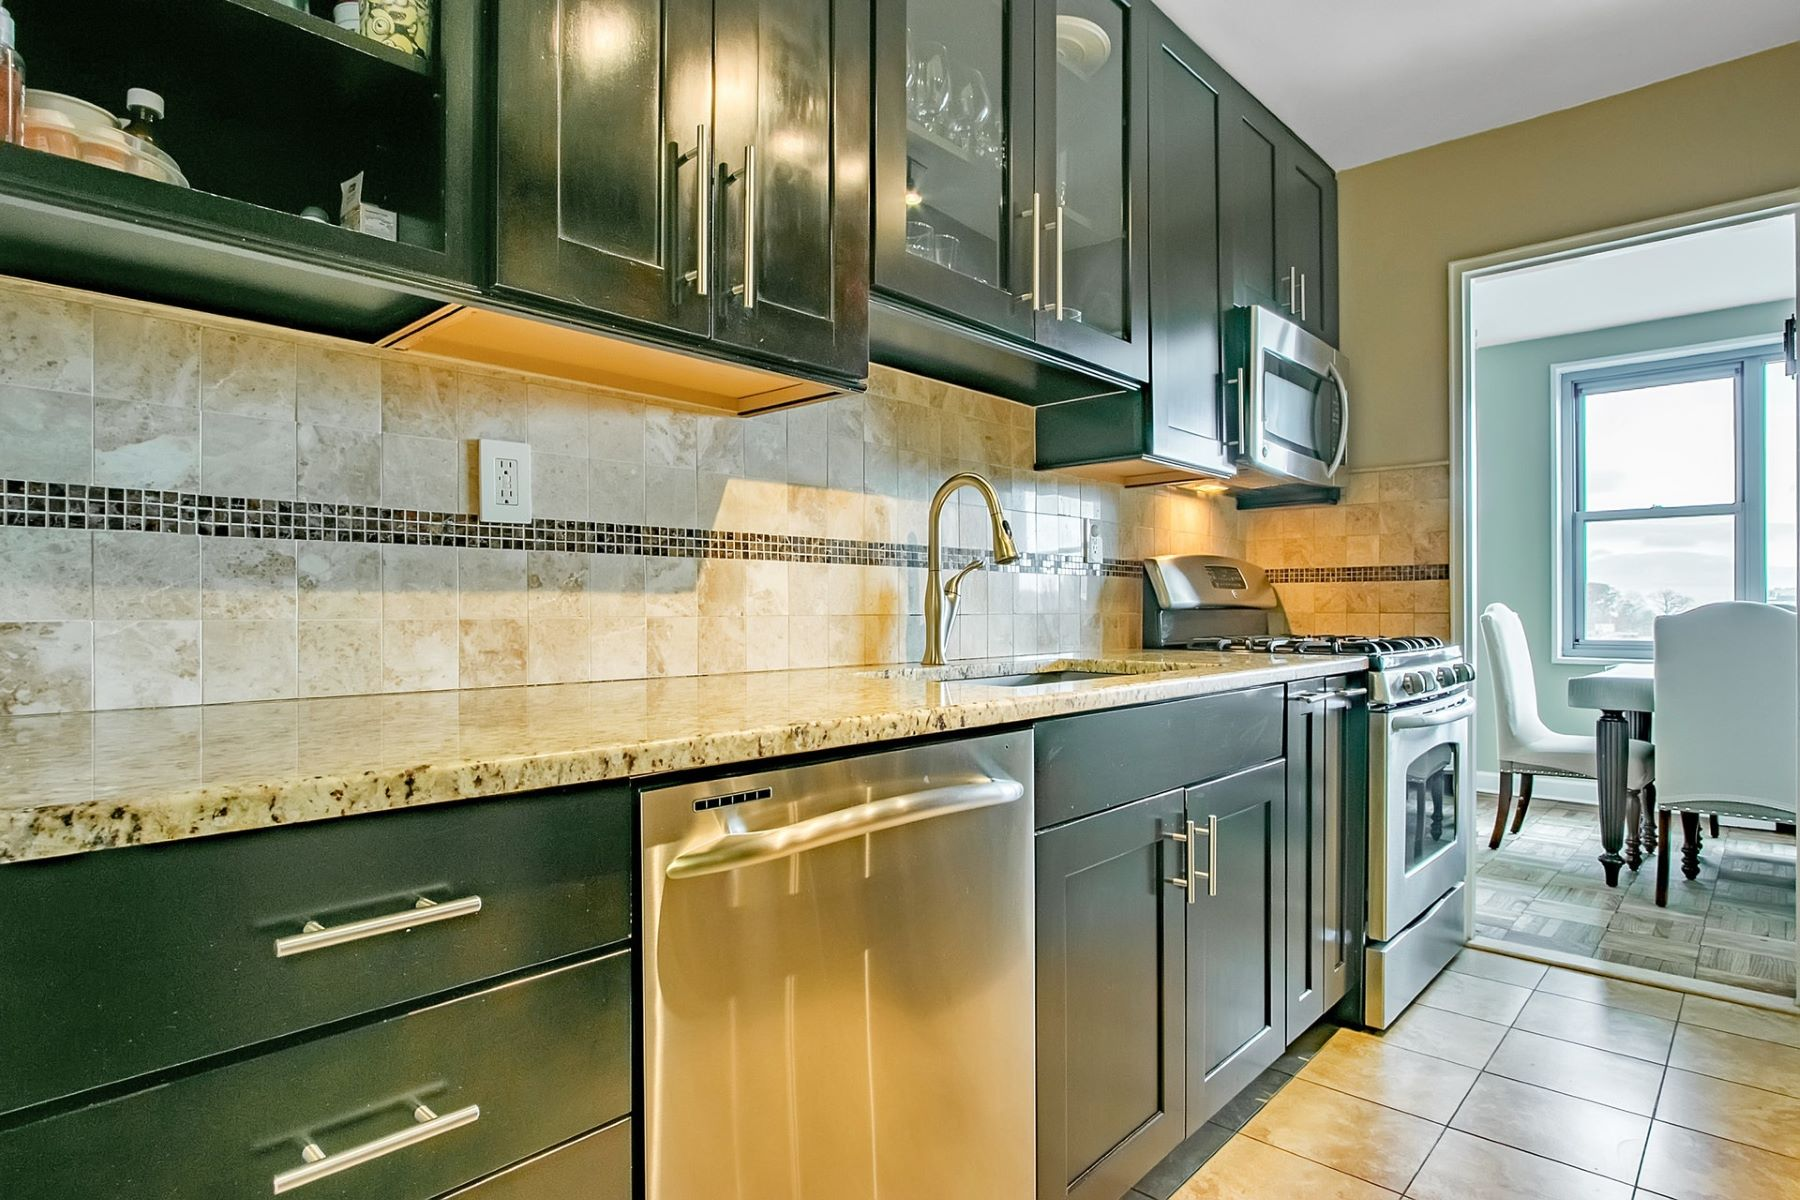 Co-op for Sale at Beautifully Renovated 2100 Linwood Ave 7S, Fort Lee, New Jersey 07024 United States